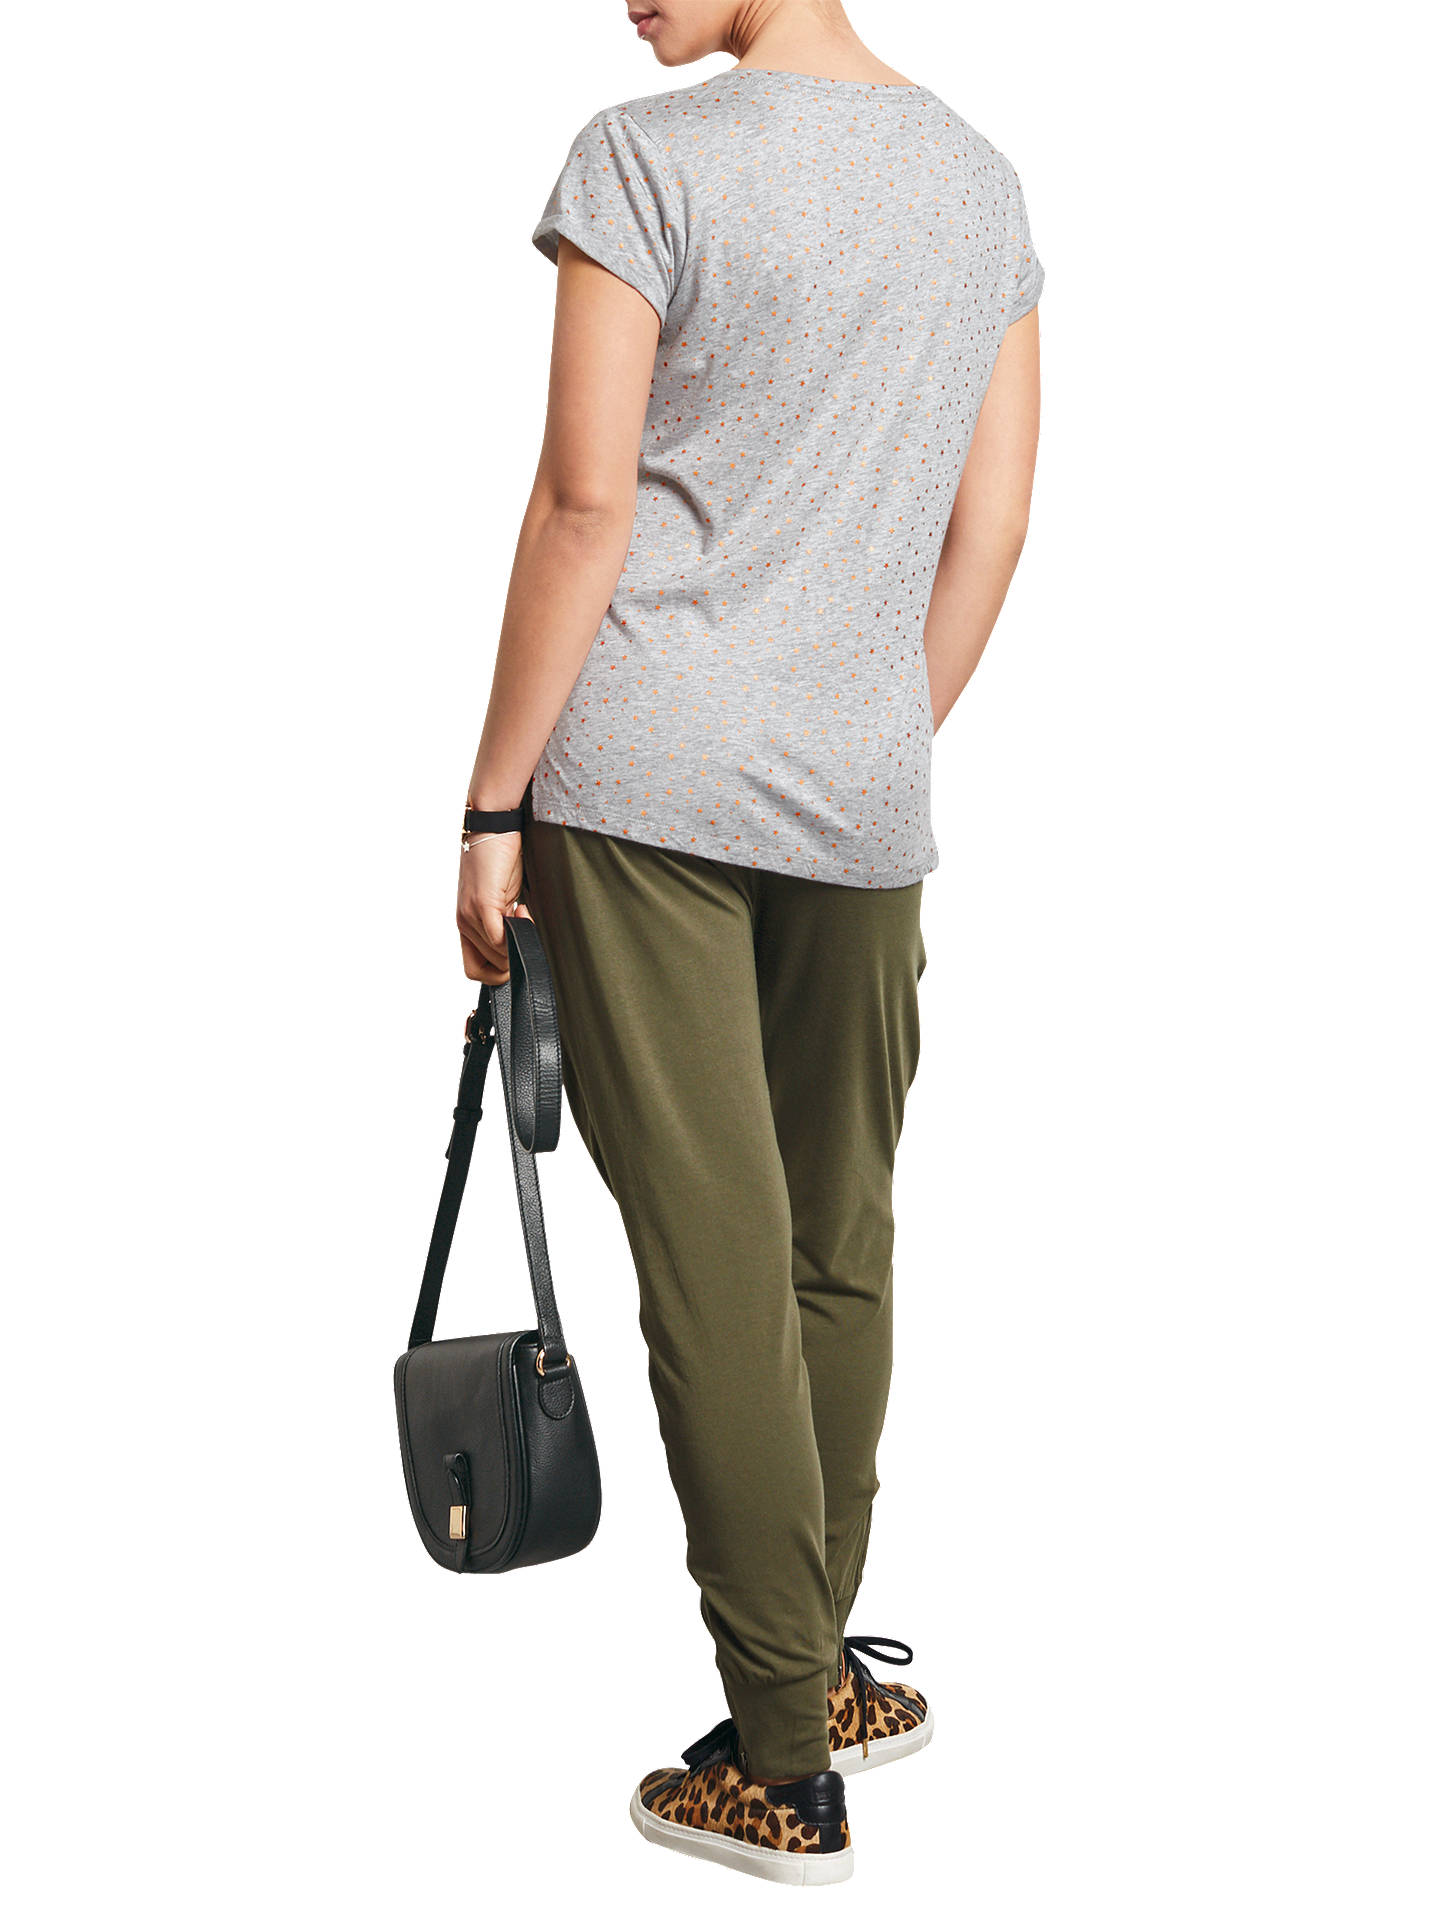 986748fa0317 Buy hush Amie Joggers, Olive, XS Online at johnlewis.com ...